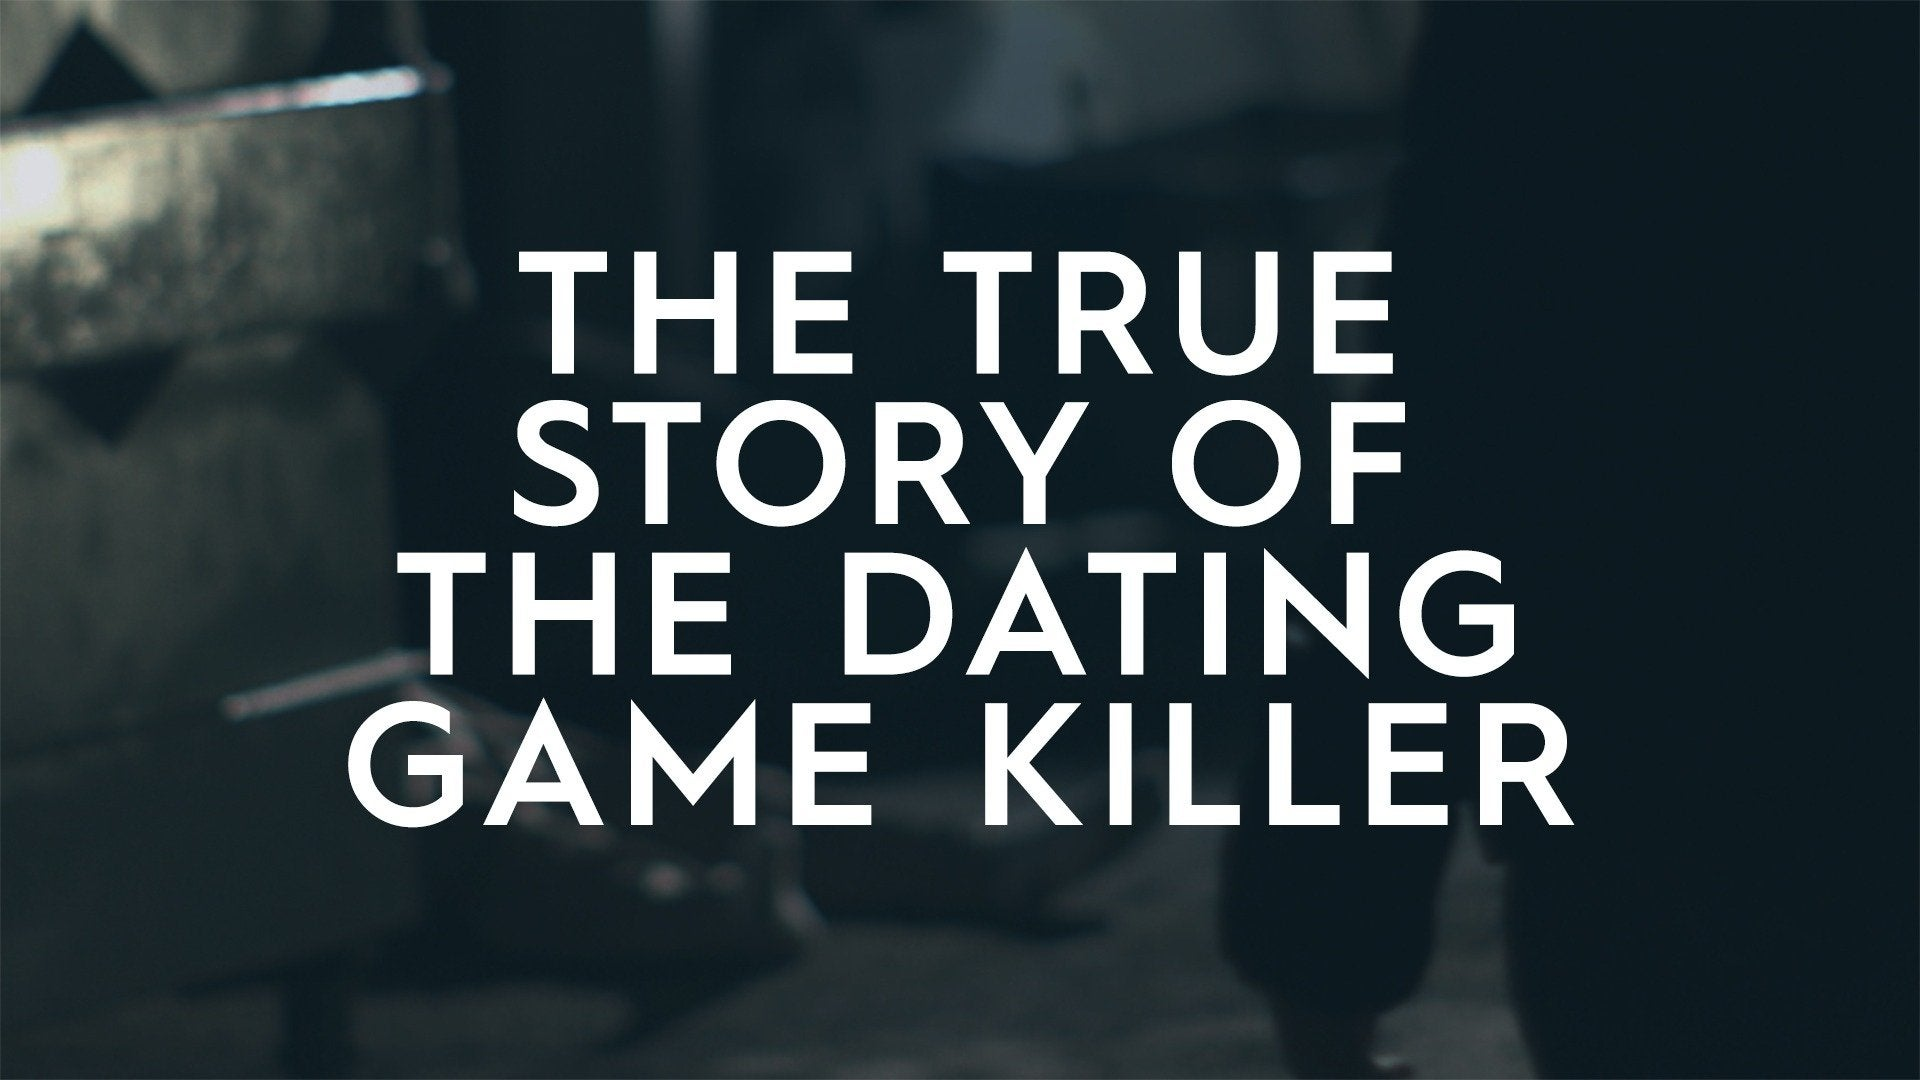 The True Story of the Dating Game Killer